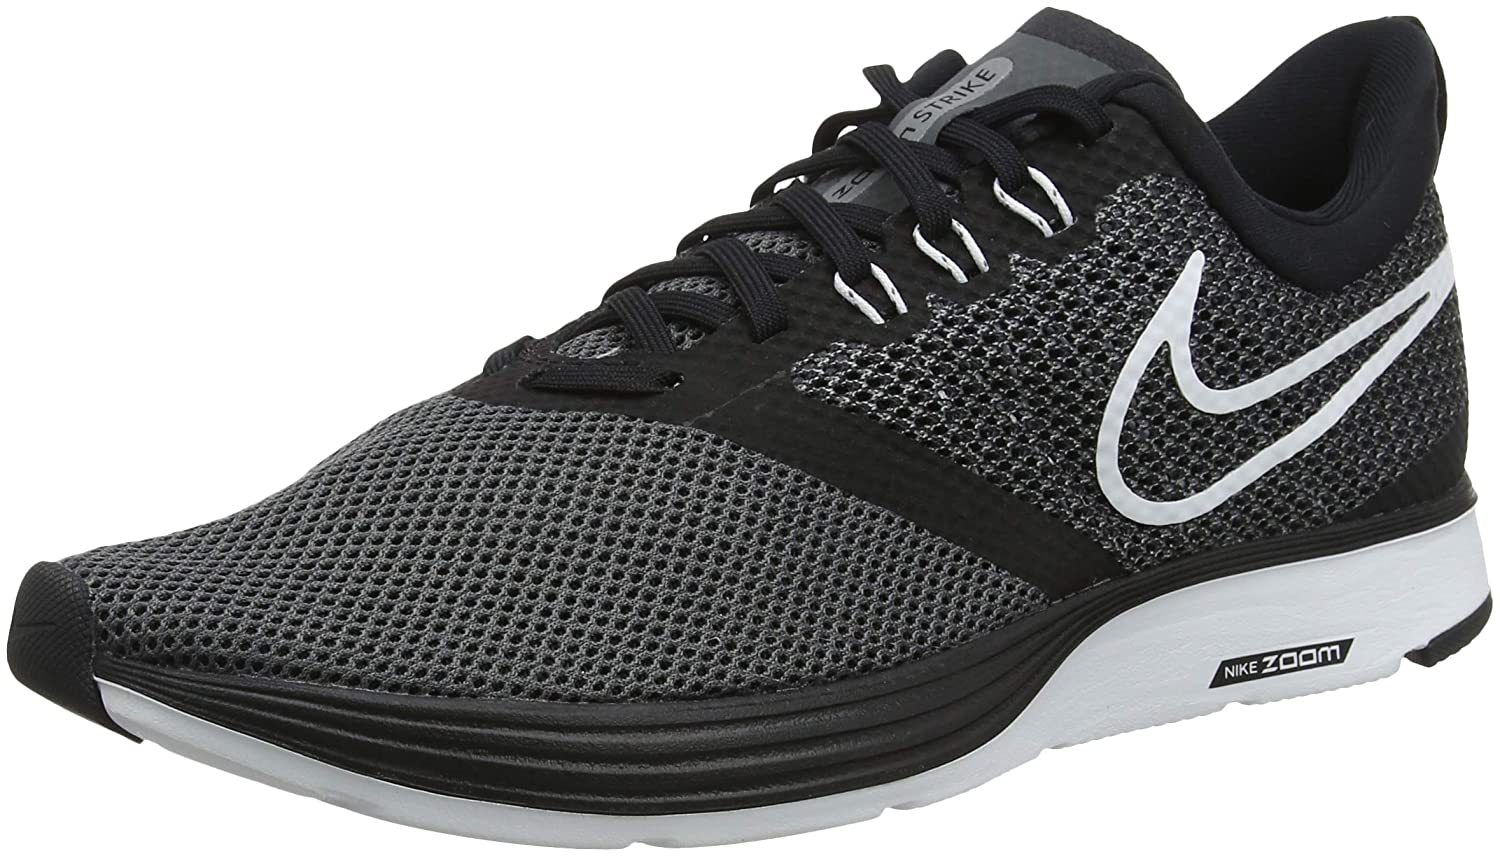 0572e7b4b0e4 Amazon.com  Nike Men s Zoom Strike Running Shoes  Nike  Shoes